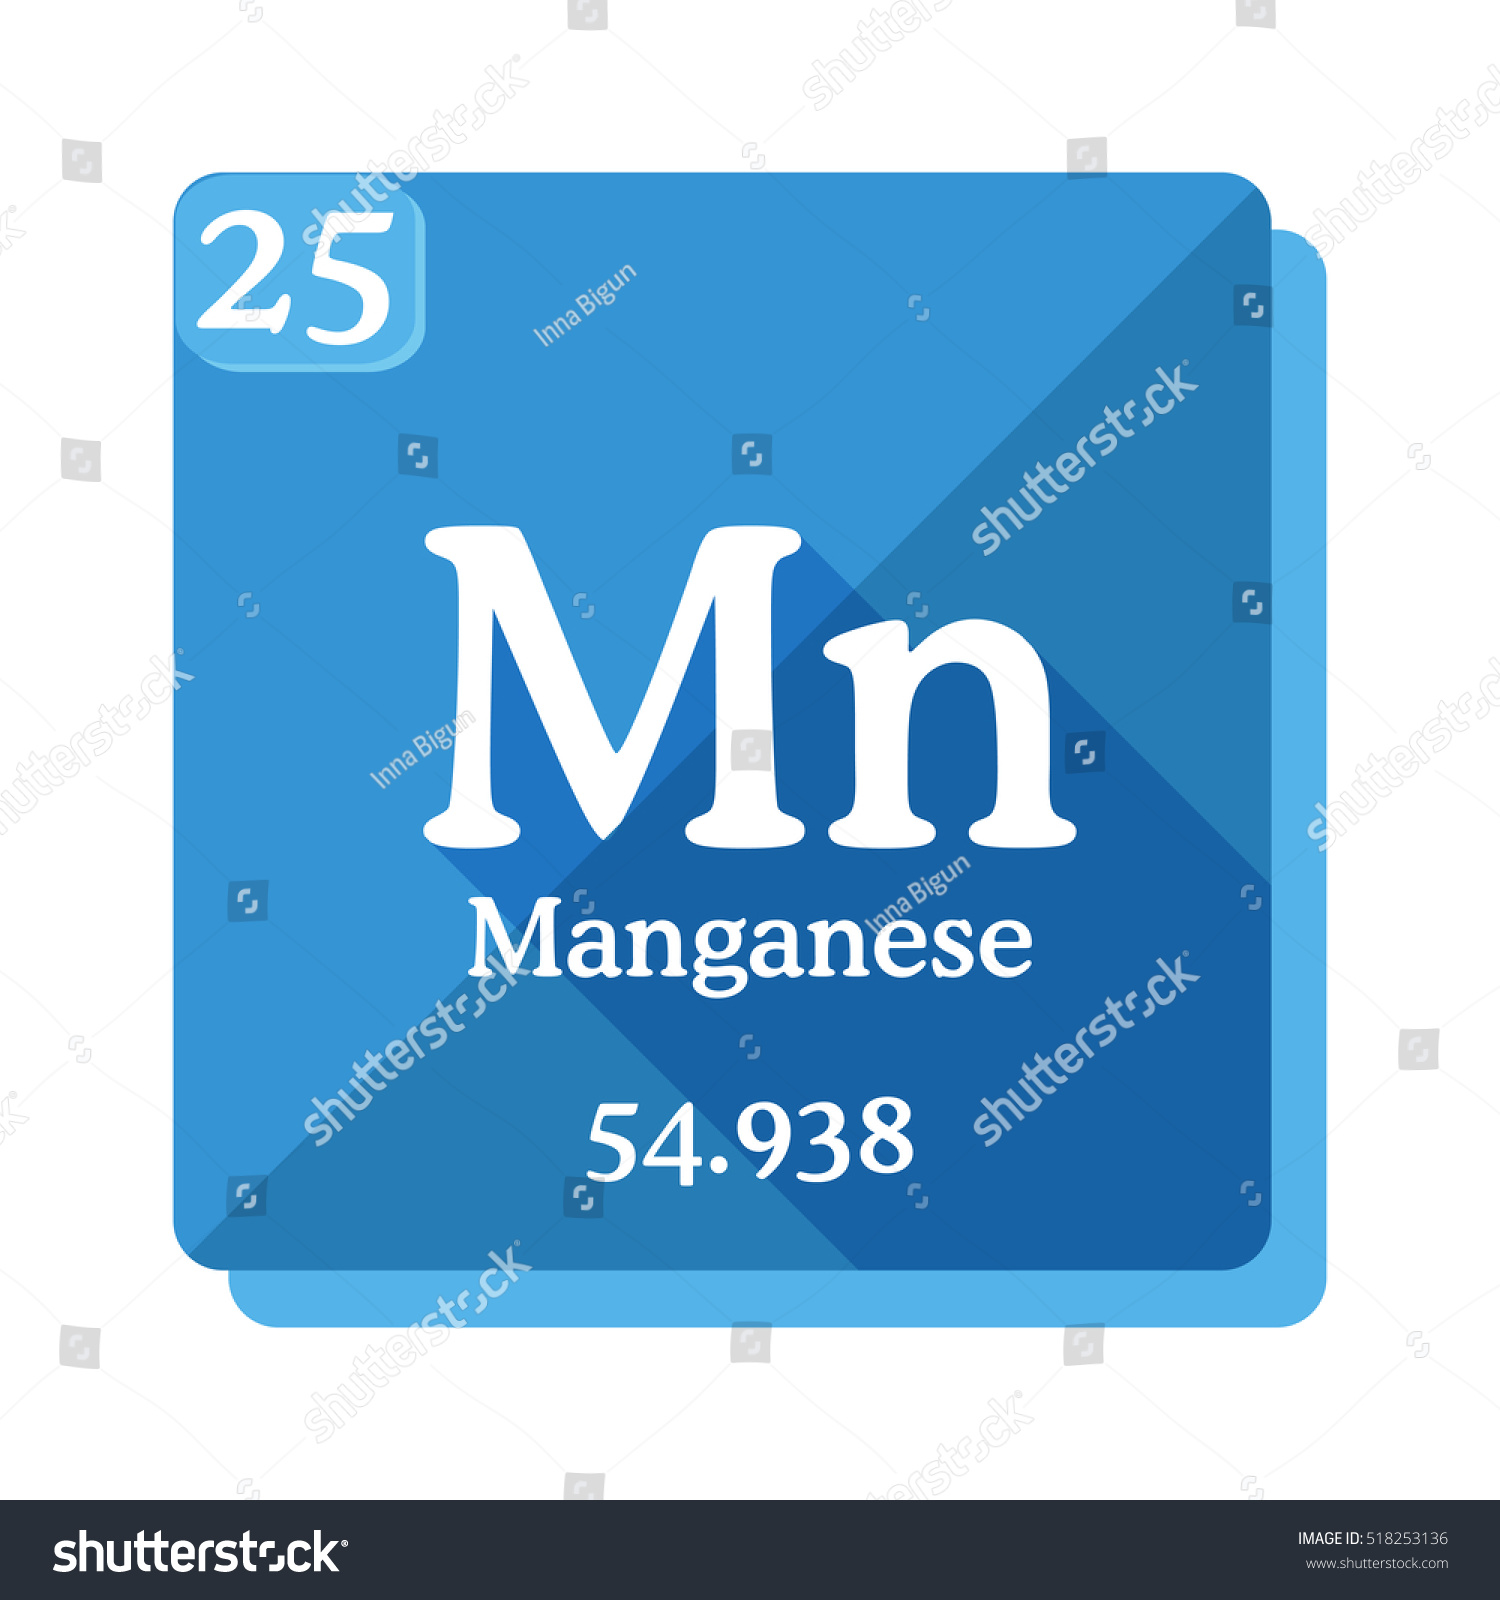 Manganese mn element periodic table flat stock vector 518253136 manganese mn element of the periodic table flat icon with long shadow gamestrikefo Images